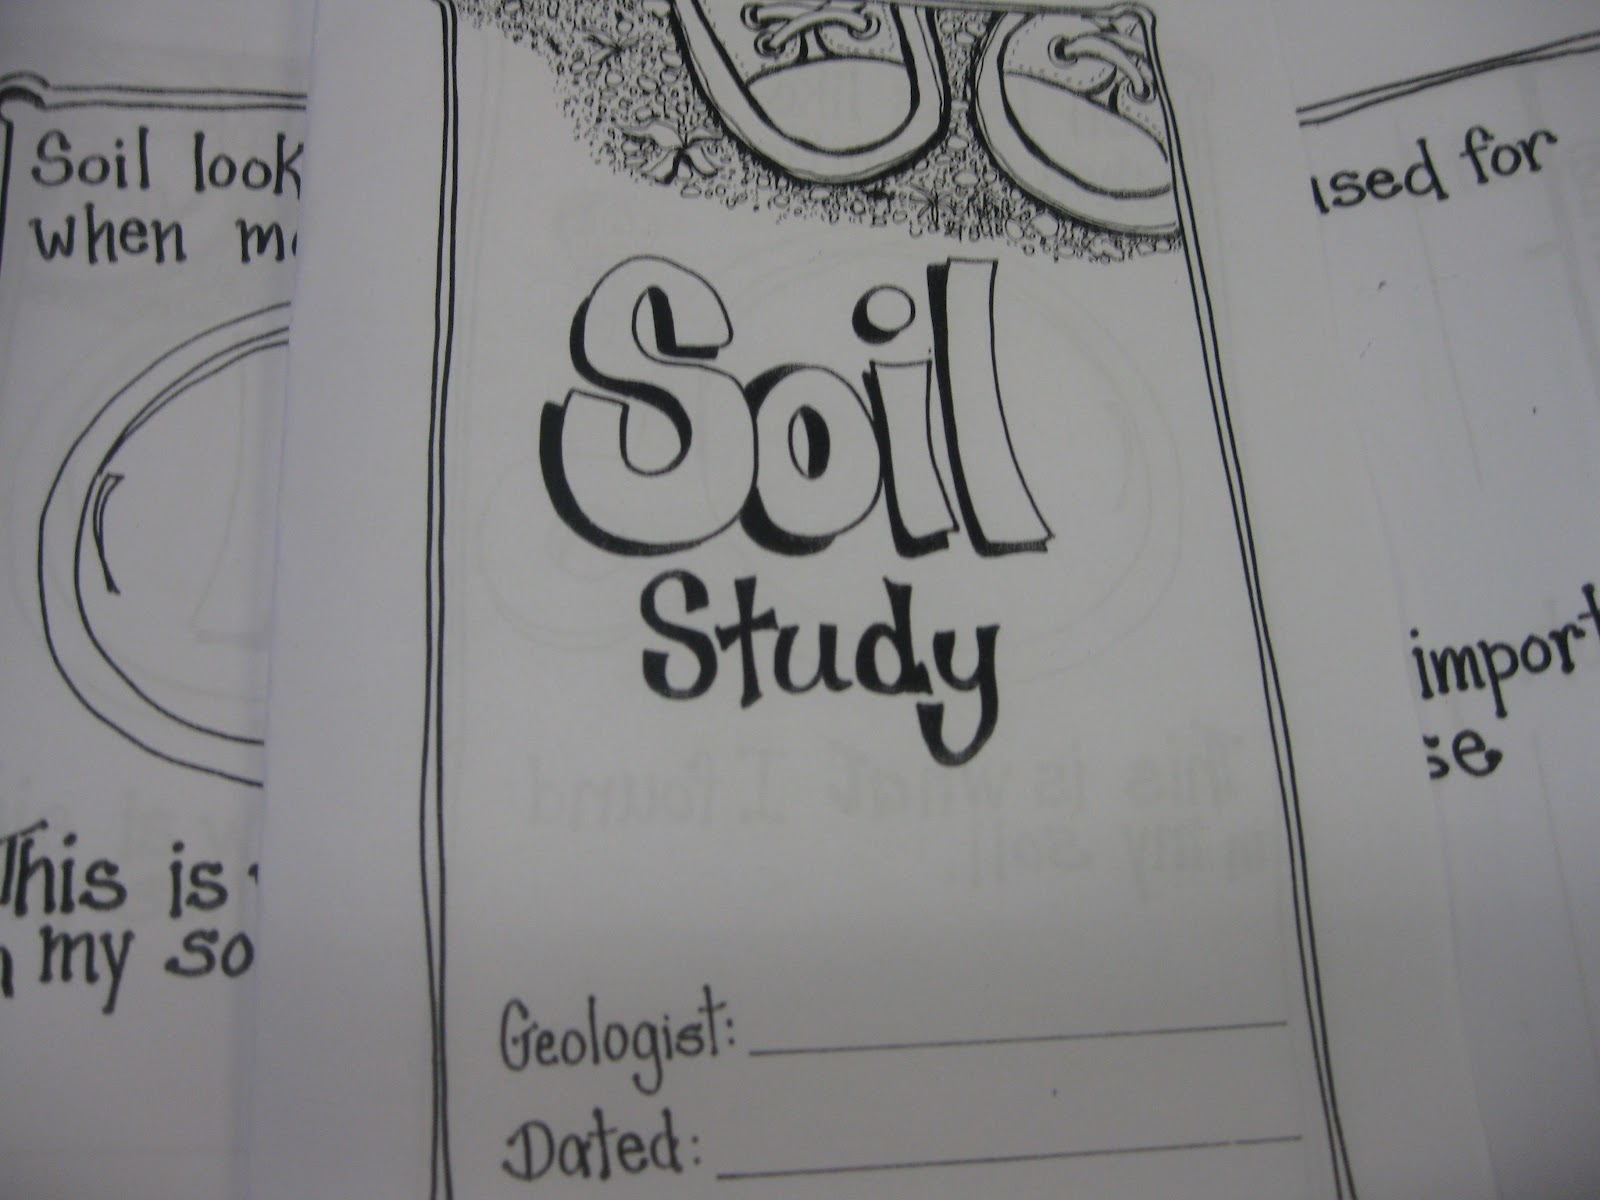 Soil Layers Clipart No Watermarks 20 Free Cliparts